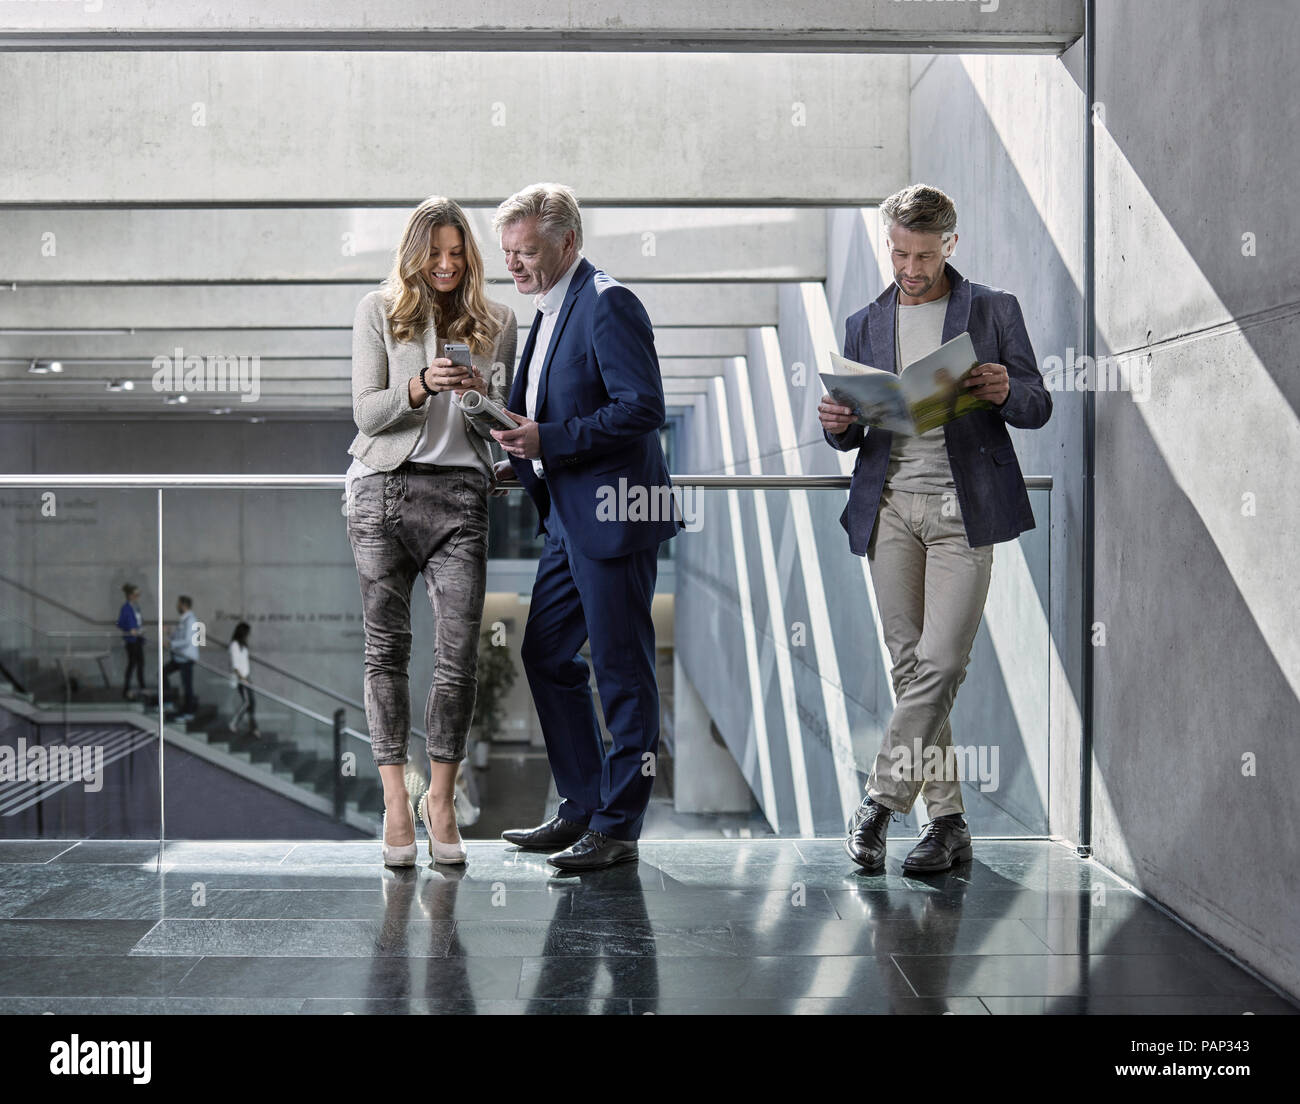 Business people talking on office floor - Stock Image